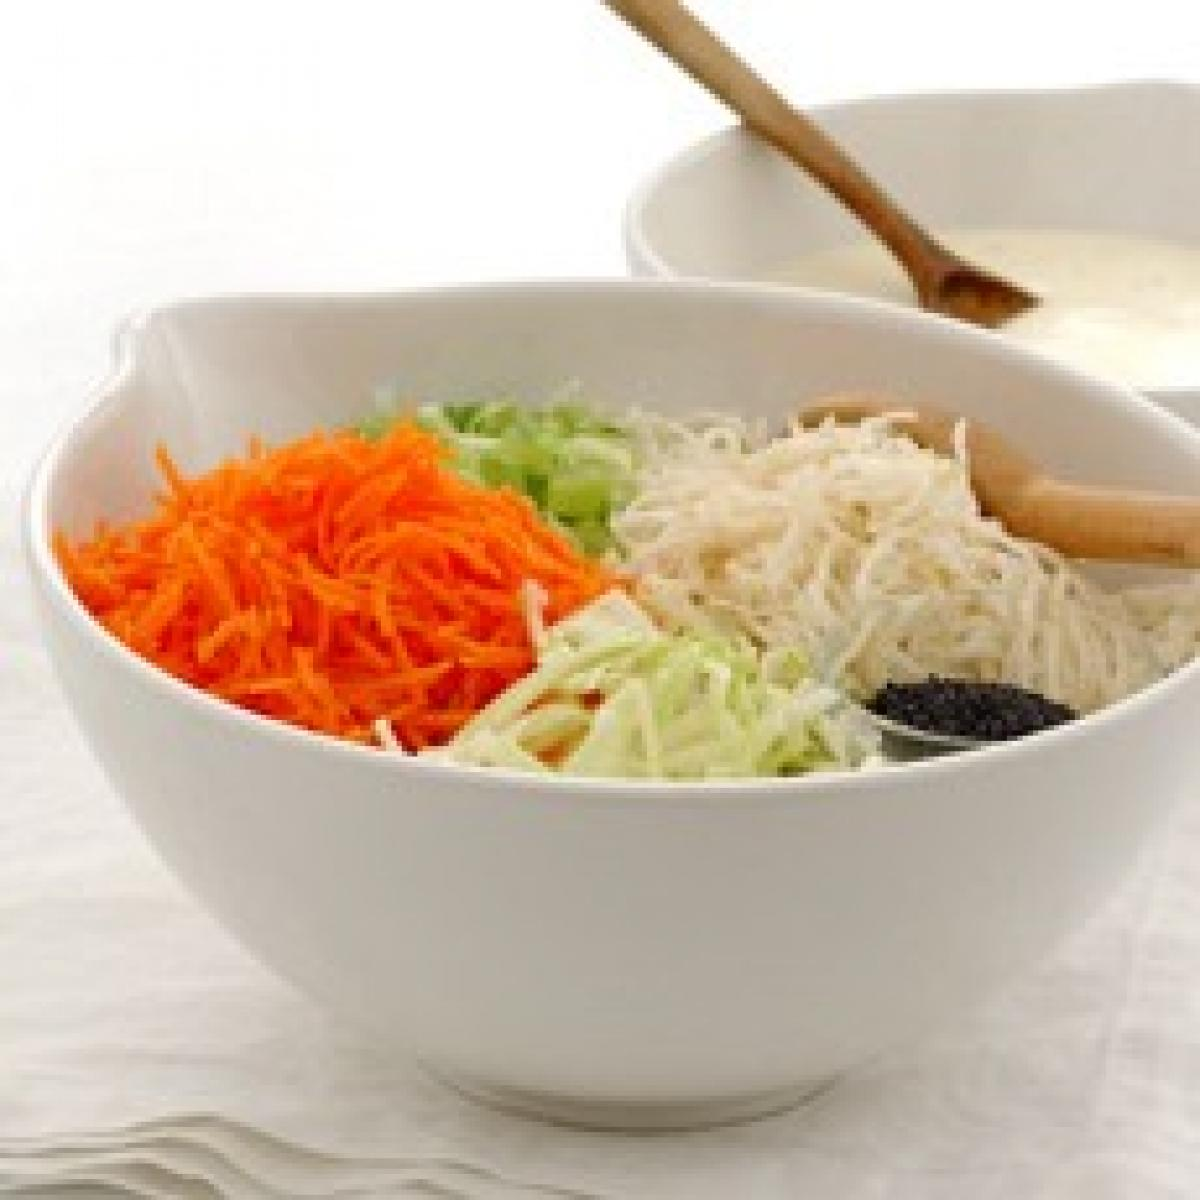 A picture of Delia's Four Star Slaw (Coleslaw) recipe